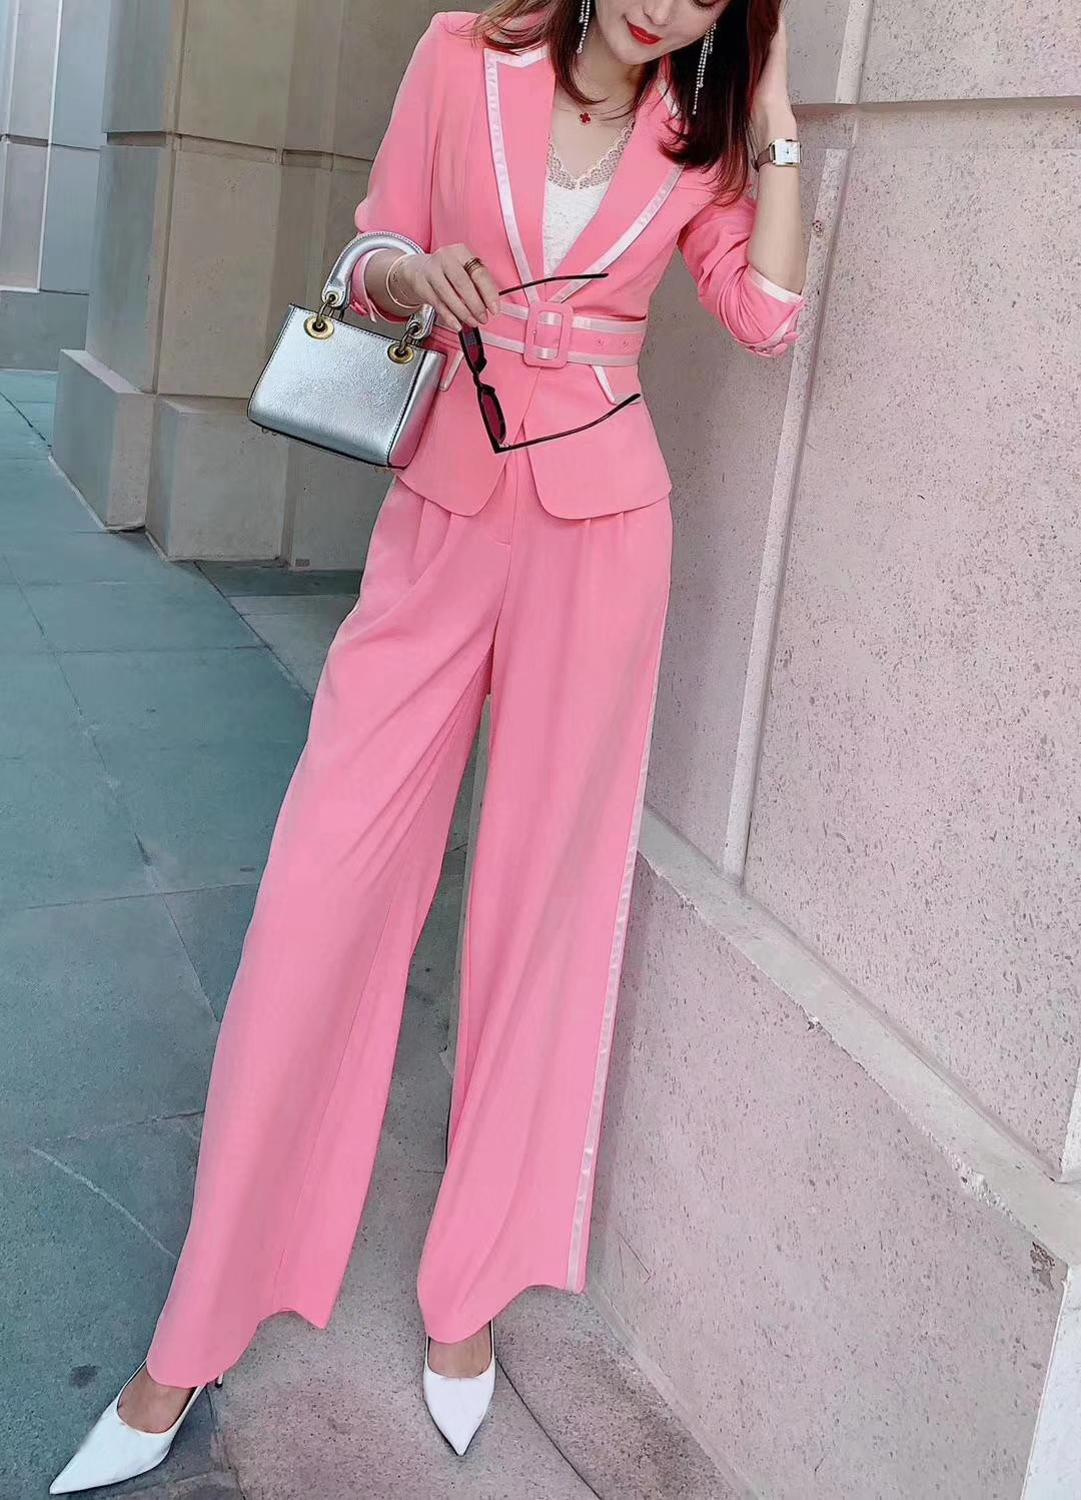 2020 Summer High Quality New Woman Pants Suit Pink Romantic Style Silver Edge Notched Silver Edge Belt Lady Suit